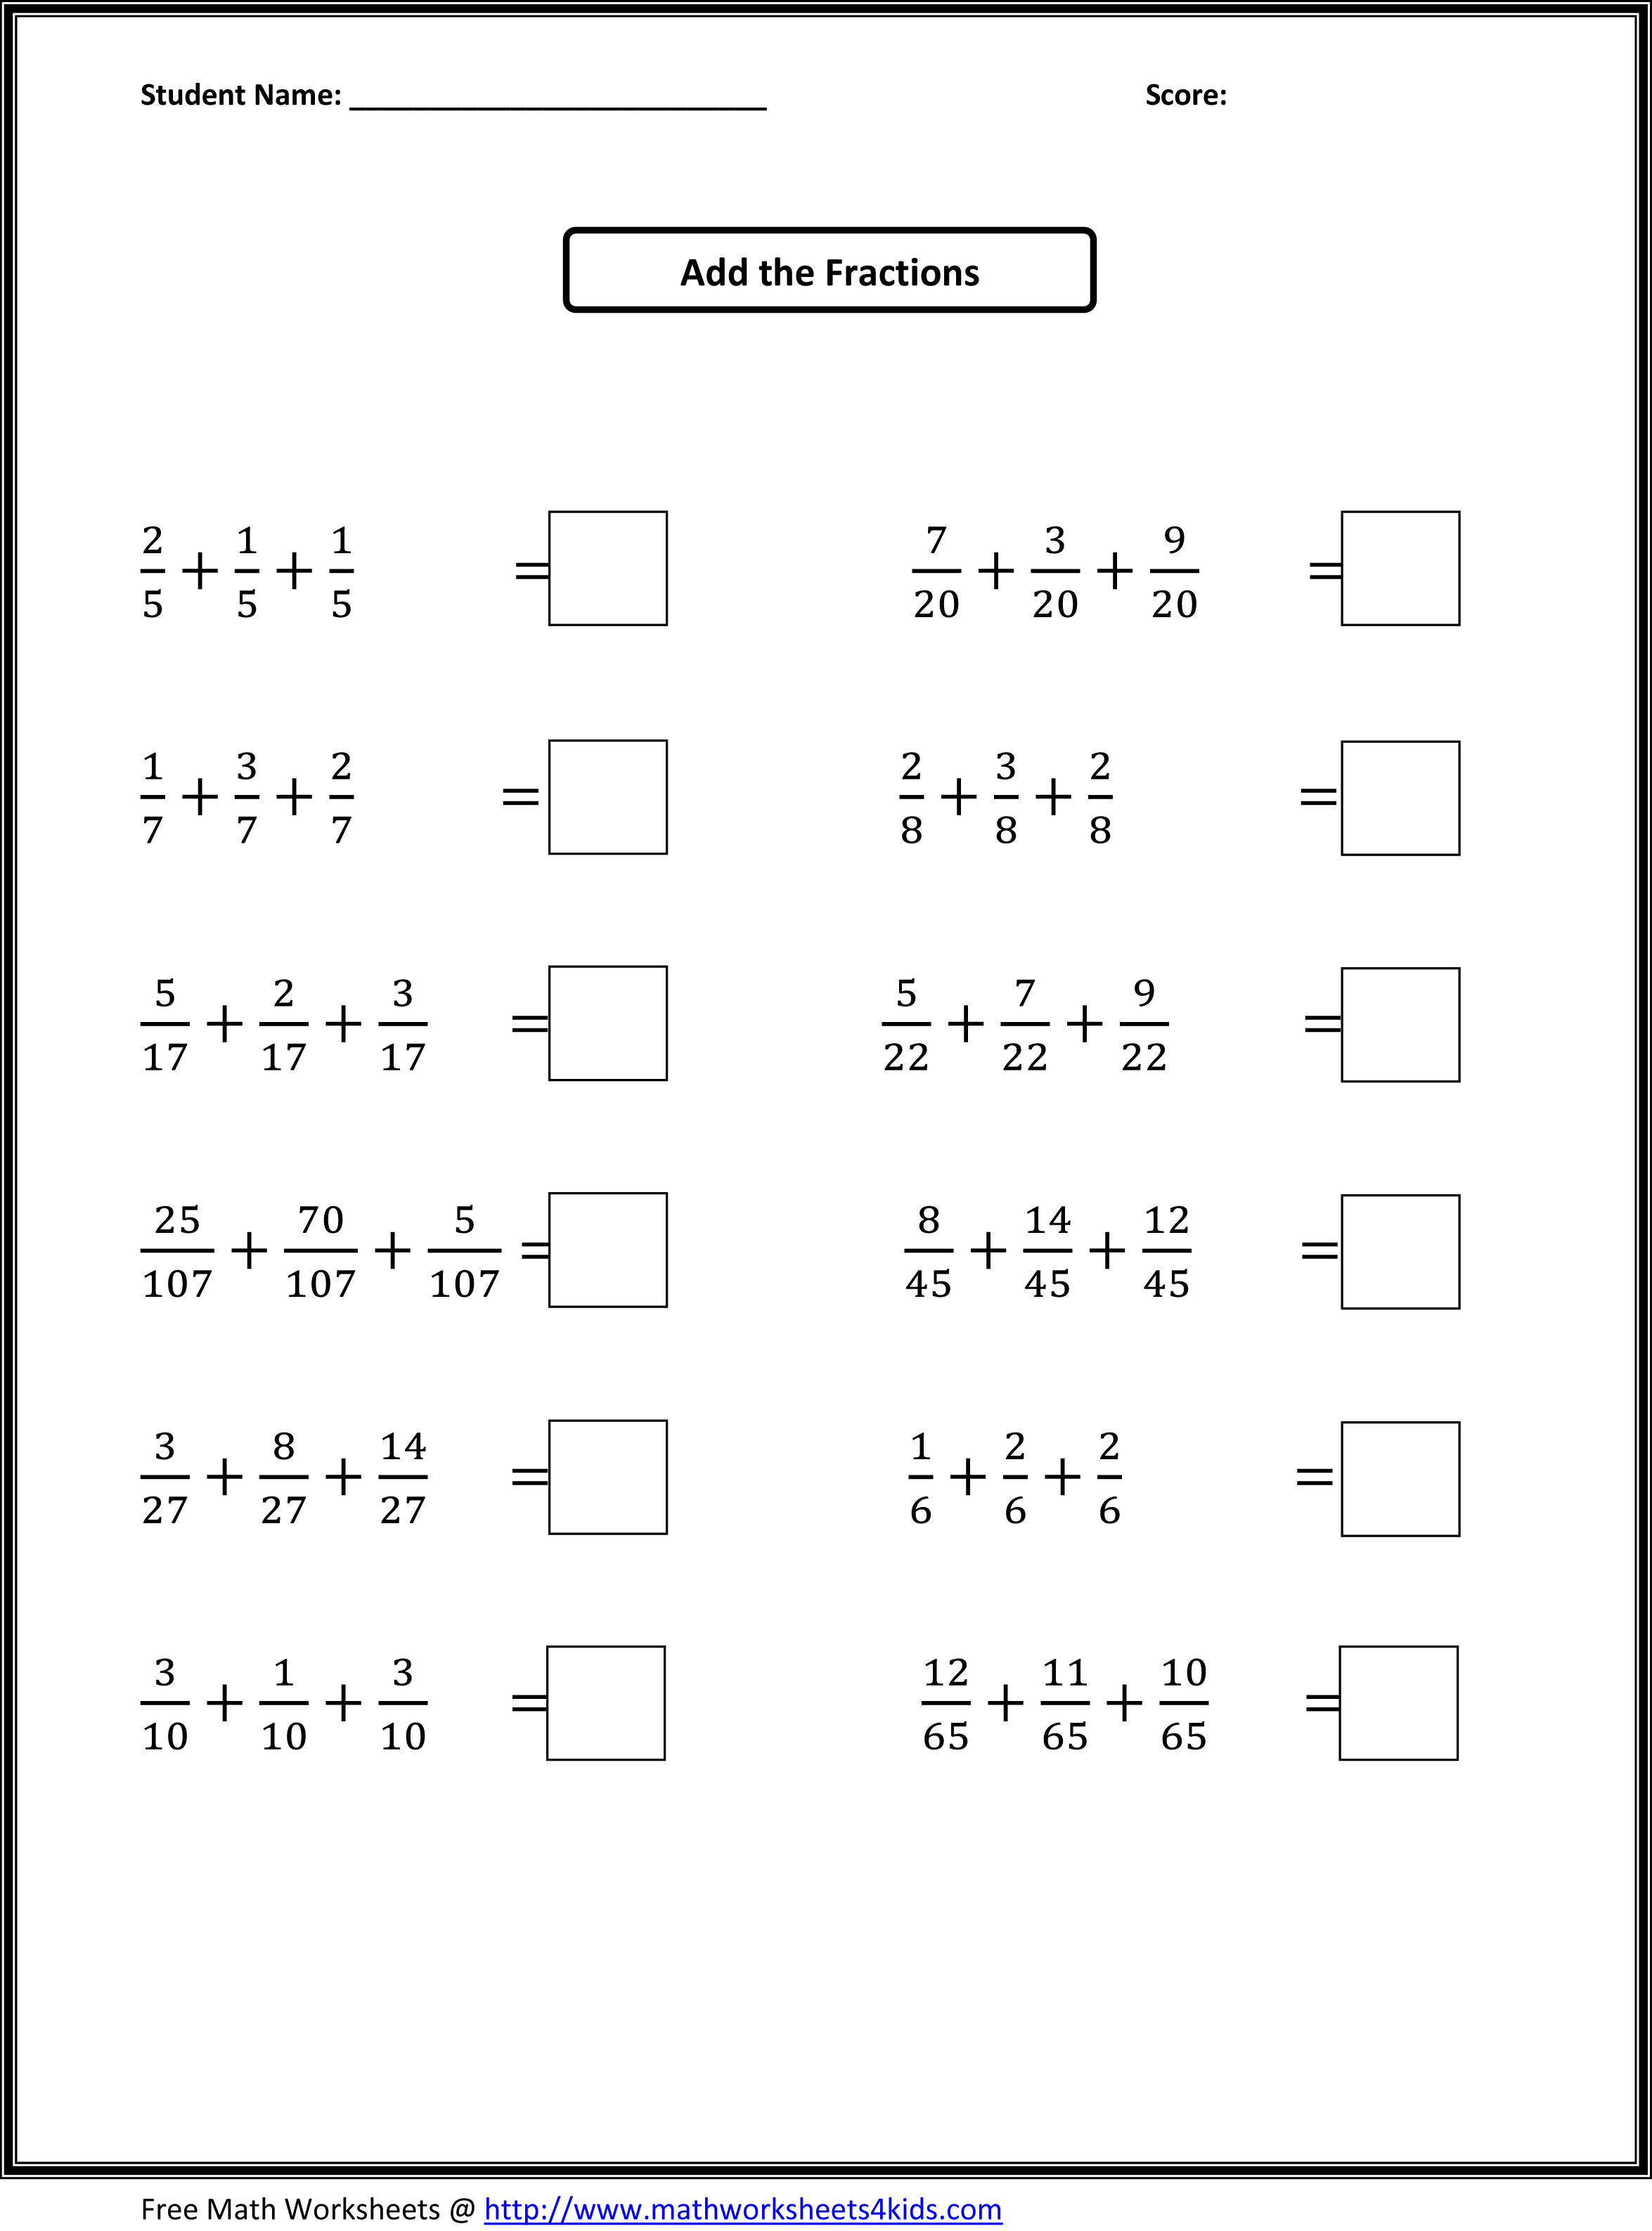 Worksheet Work For 4th Graders 4th grade math worksheets multiplying fractions kids activities addition of worksheets